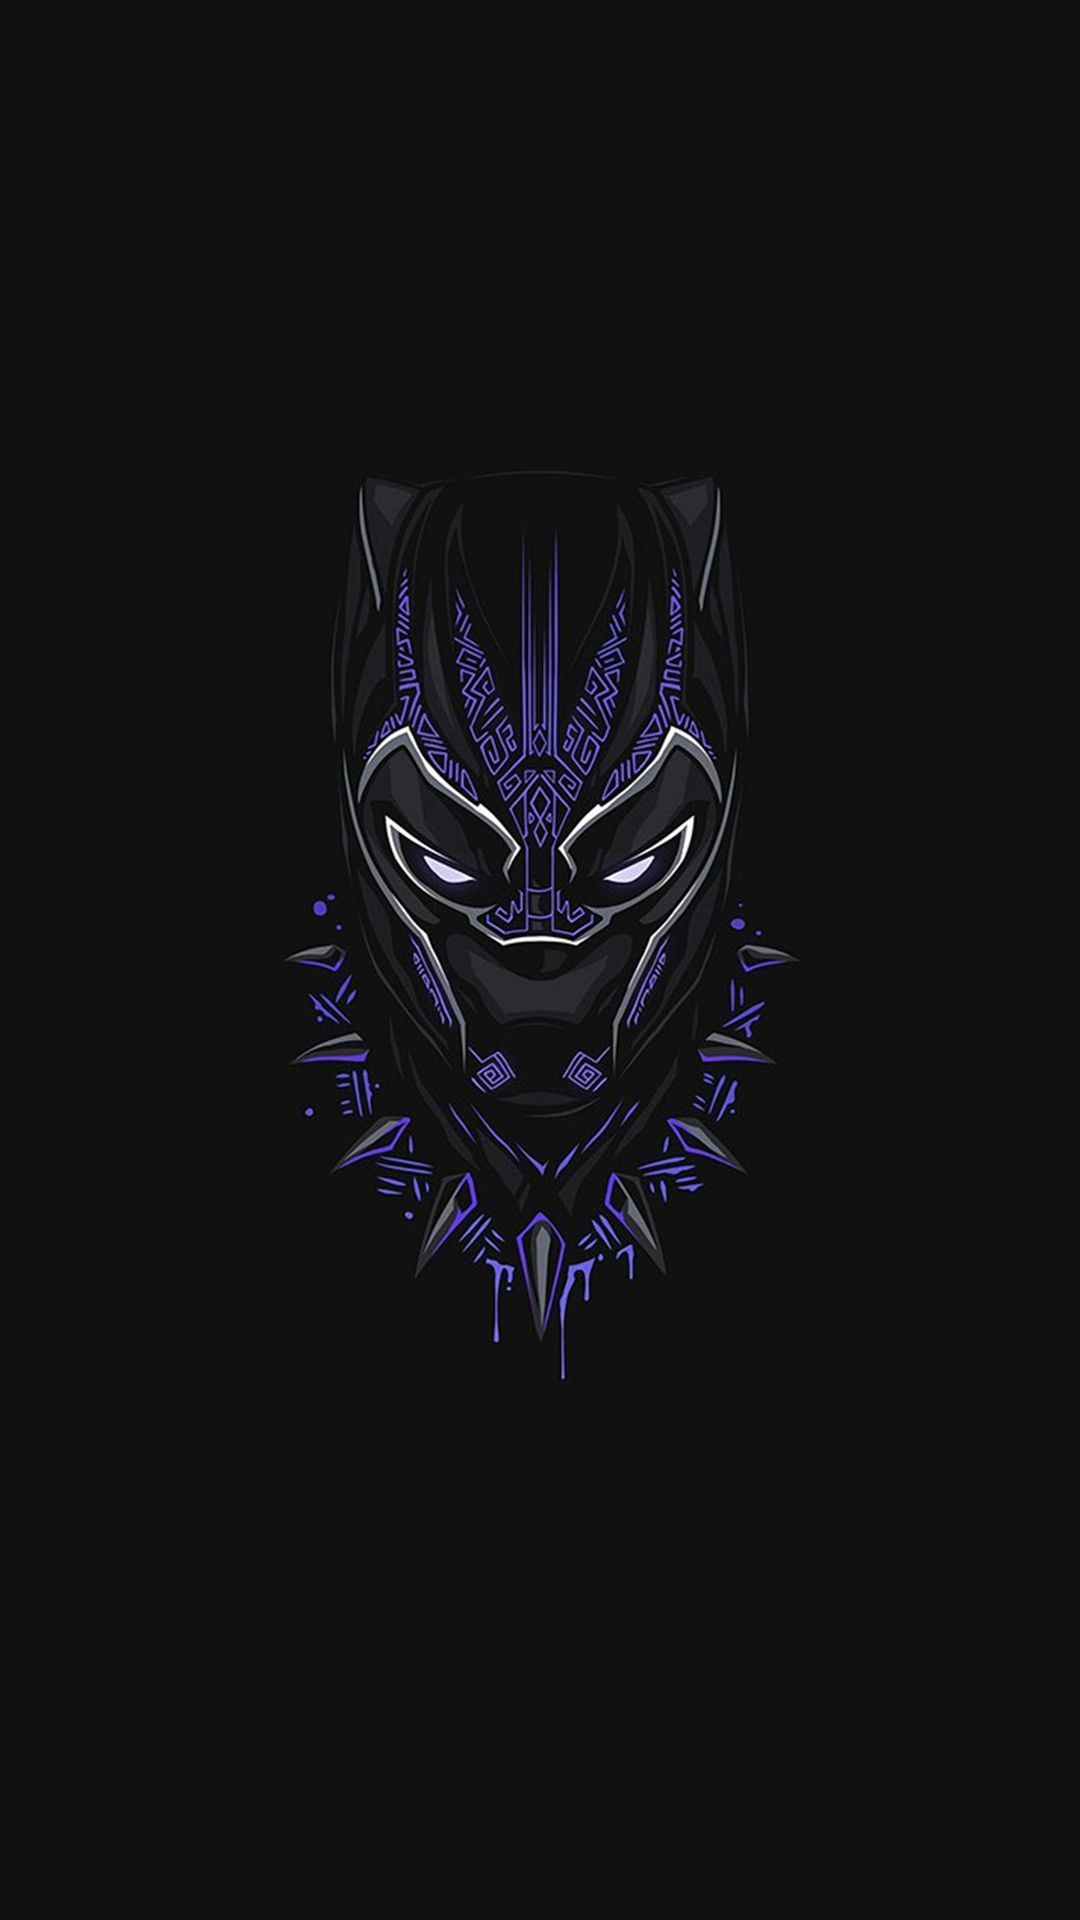 Cool Black Wallpaper Iphone How To Set Iphone Background Black Panther Marvel Superhero Wallpaper Marvel Wallpaper